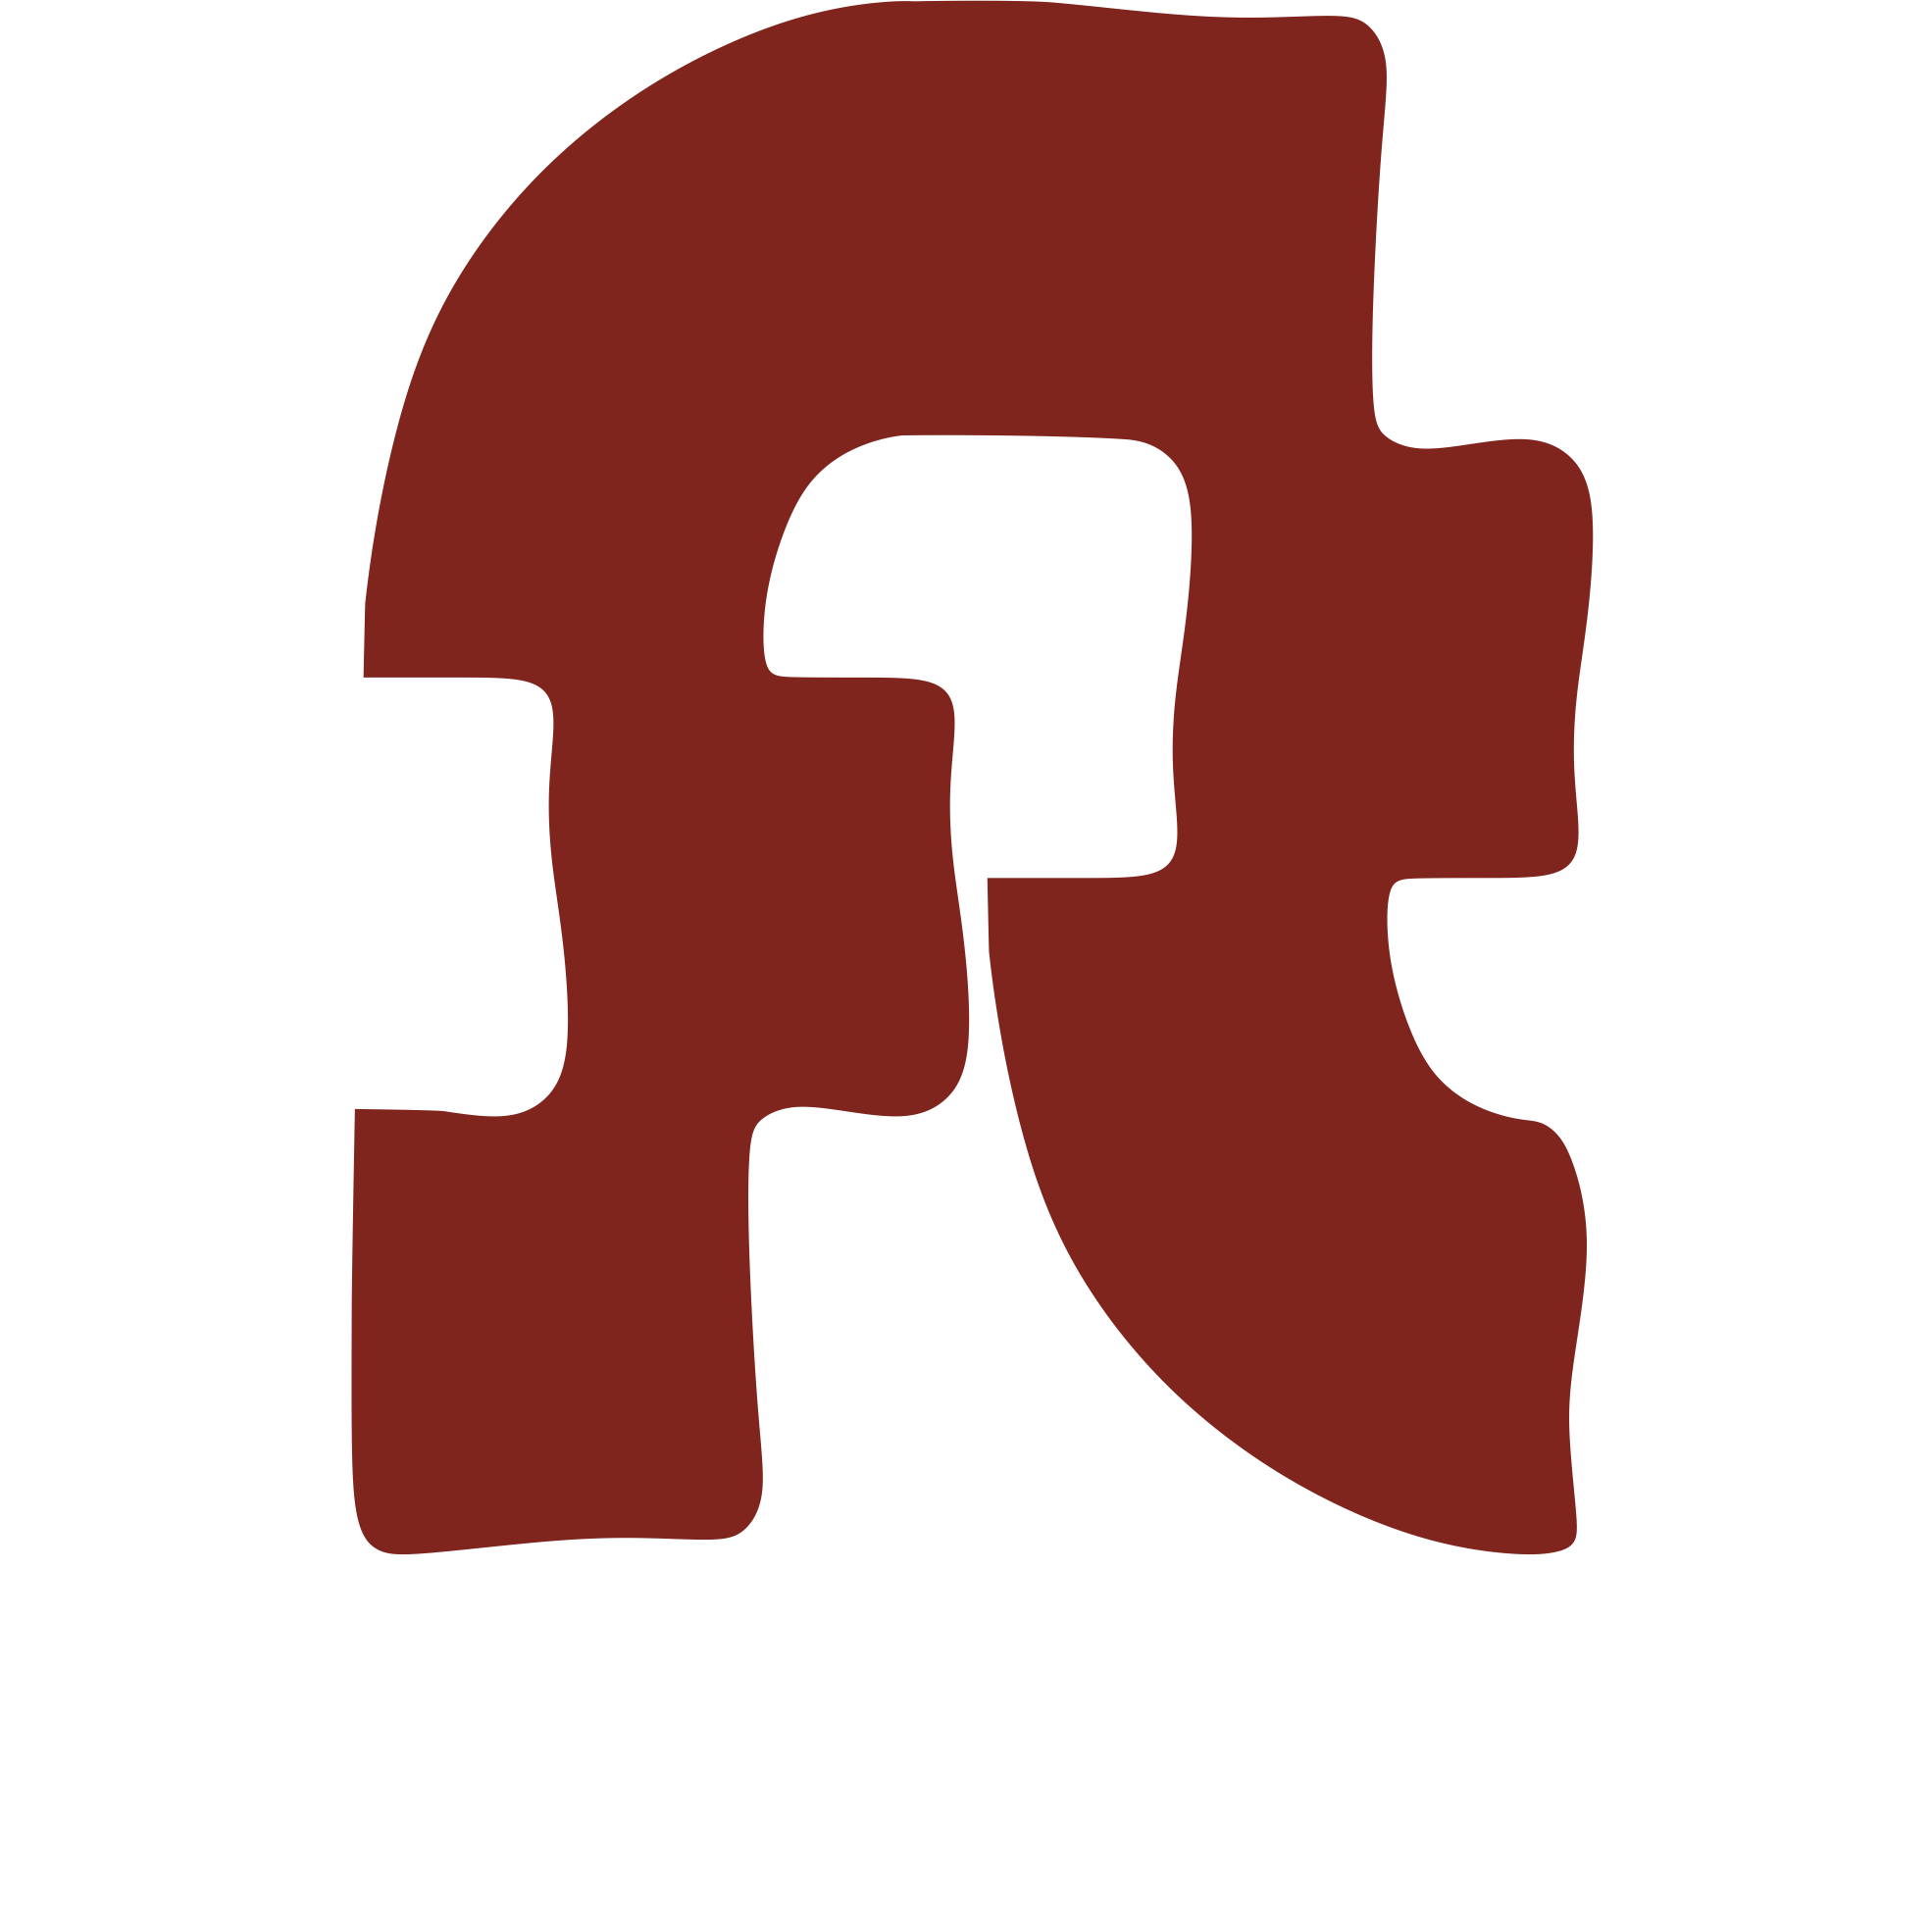 Freestylefurntiure.sk